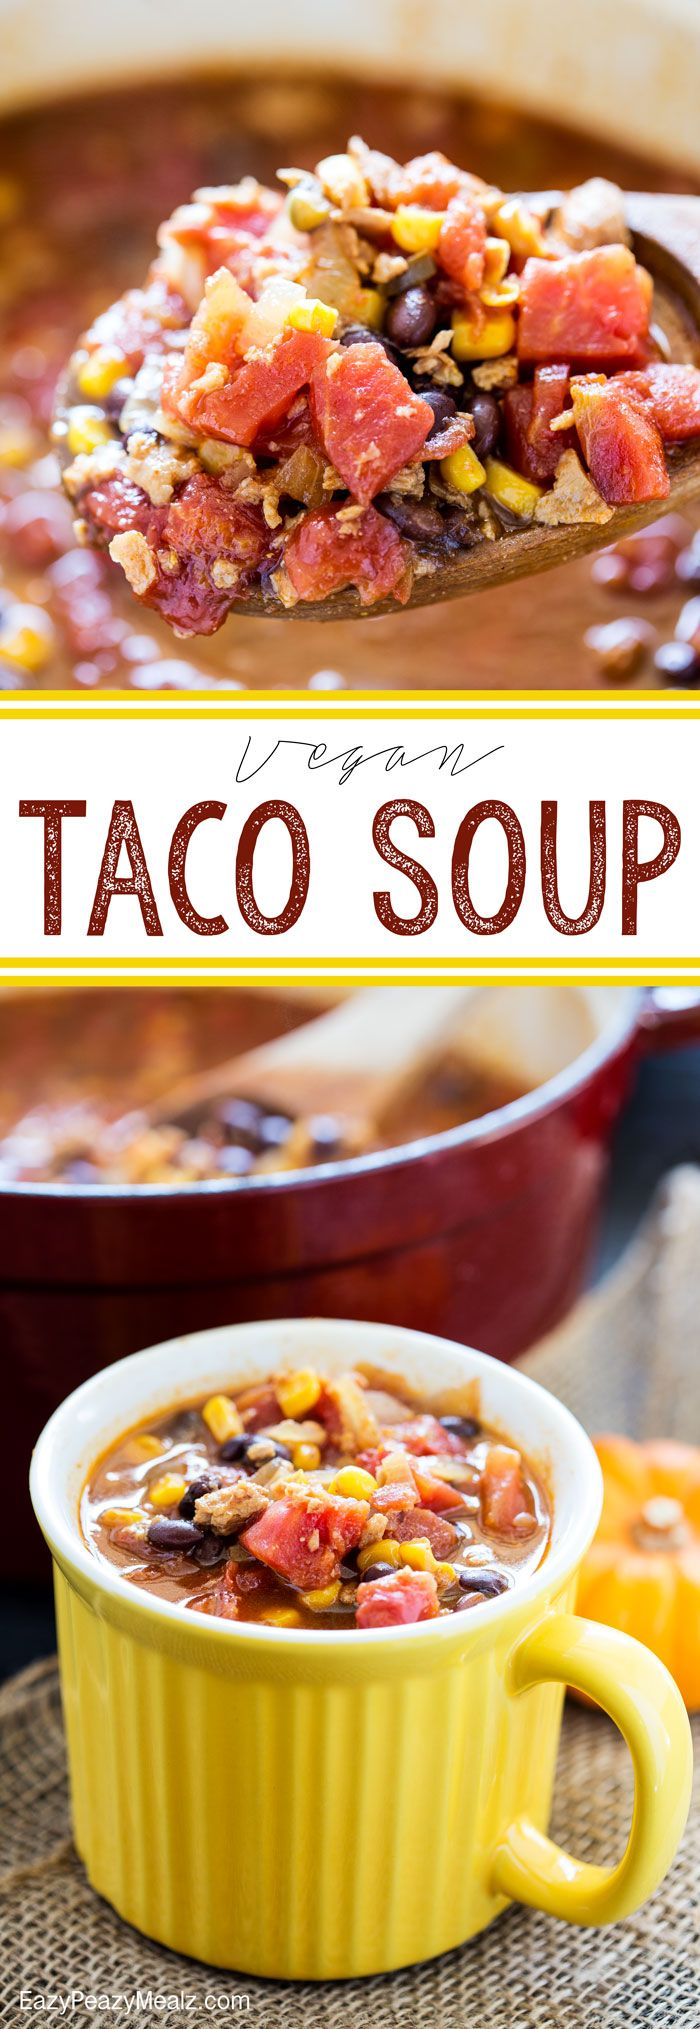 Vegan Taco Soup: A fall classic with a vegan twist. You'll never miss the meat, and you will LOVE the ease. Serious flavor too! #ad #FallWithATwist - Eazy Peazy Mealz @Target